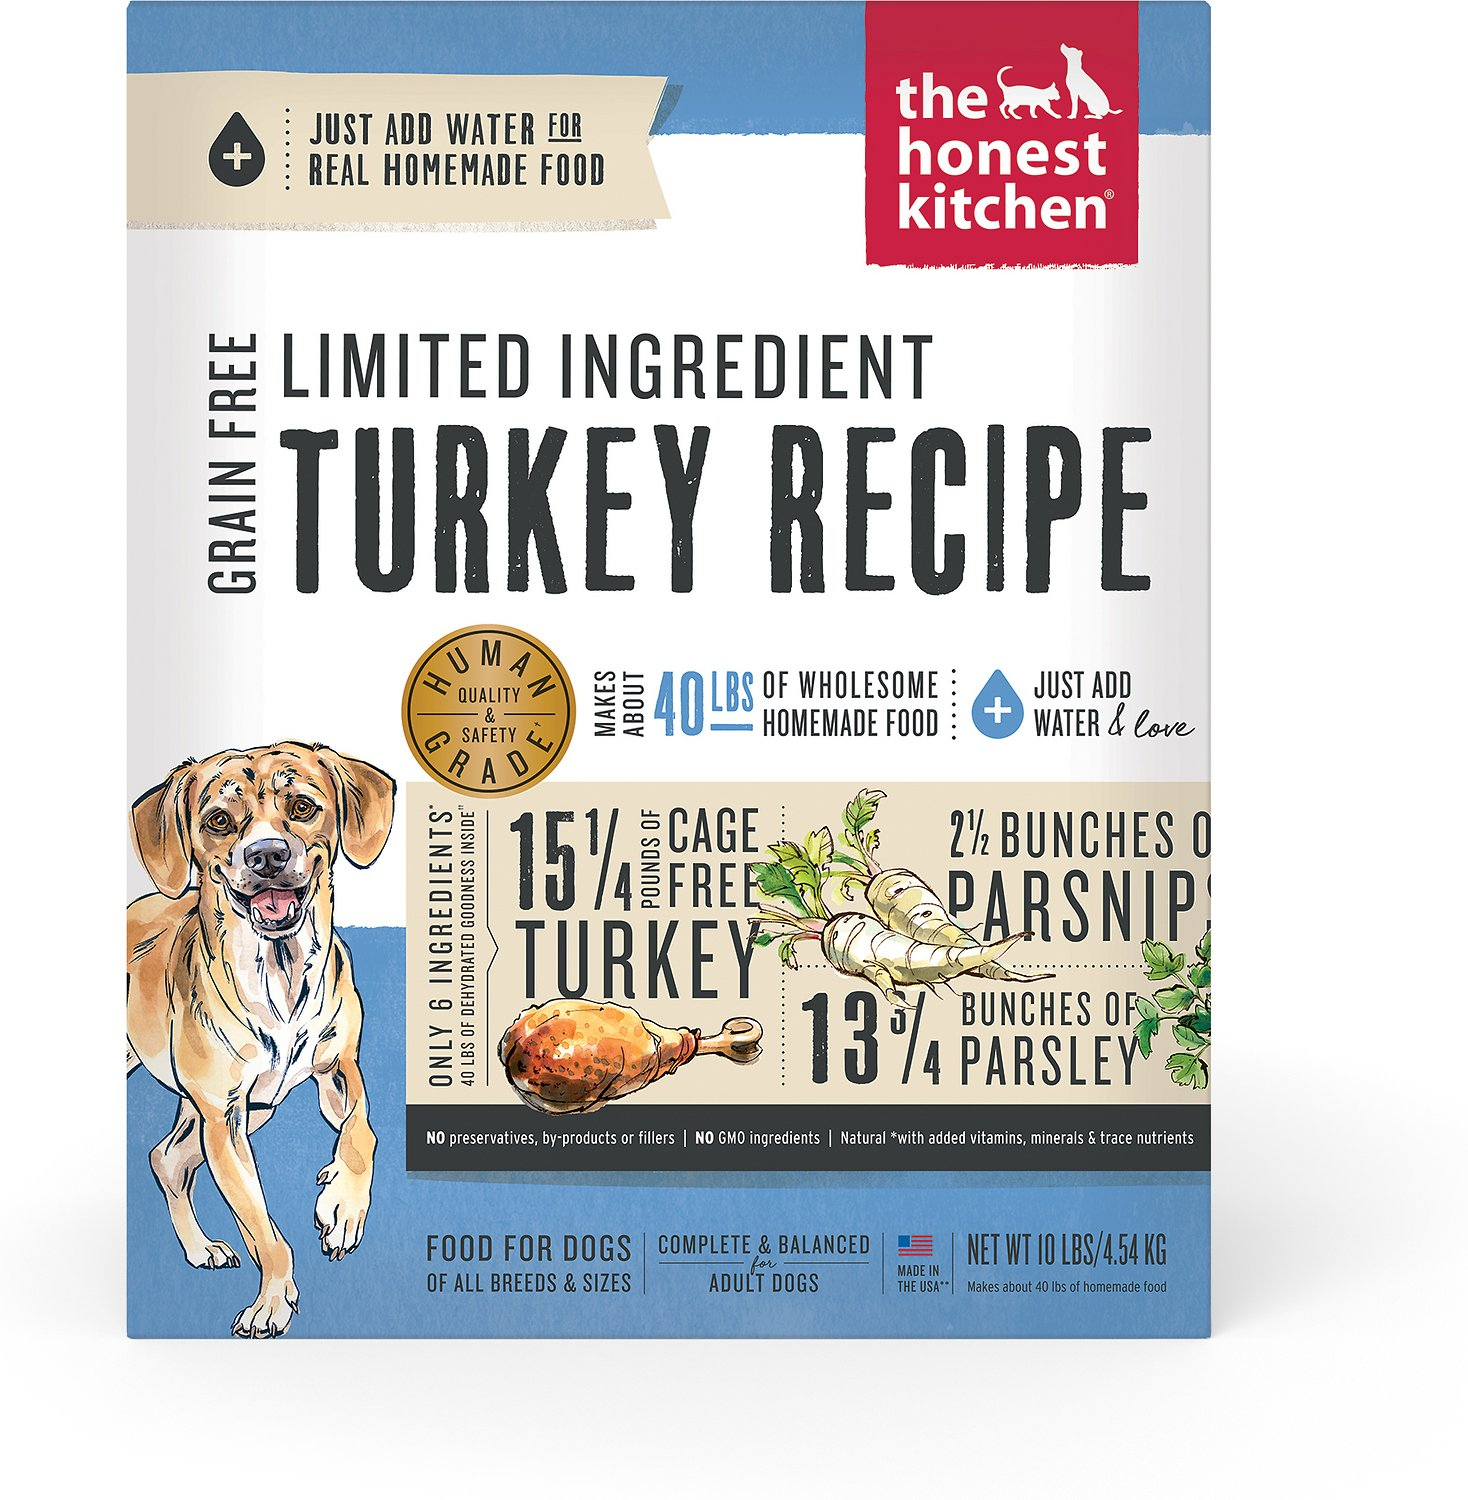 The Honest Kitchen Marvel GrainFree Dehydrated Dog Food Lb - Honest kitchen dog food